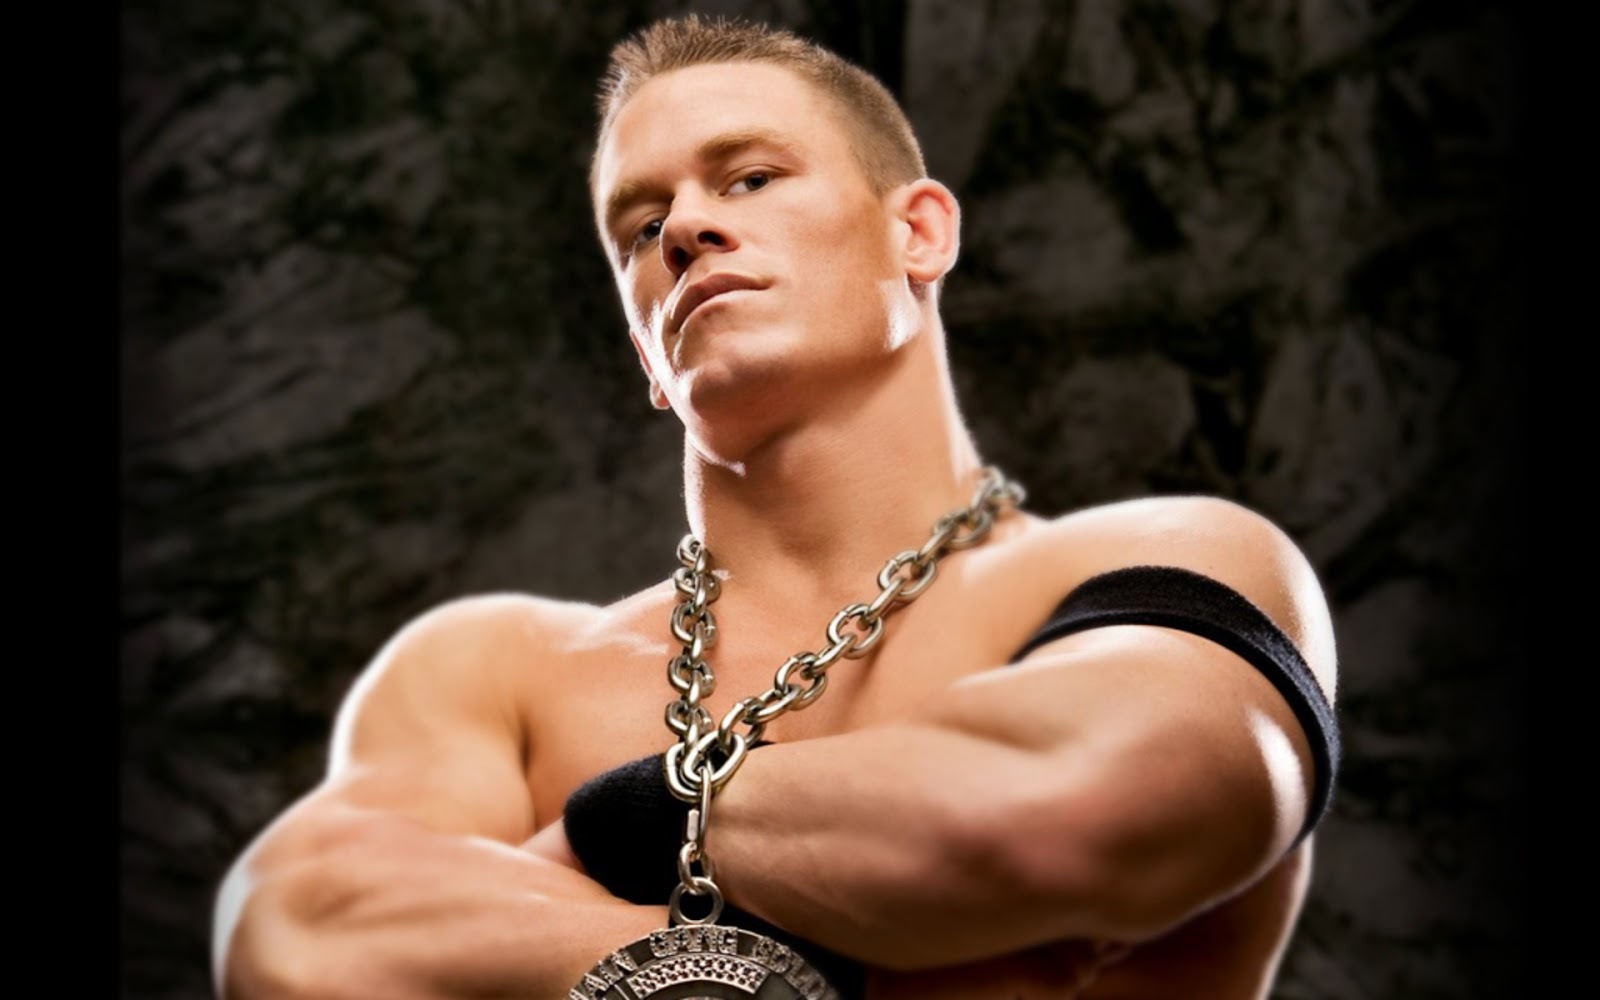 John Cena Hd Free Wallpapers